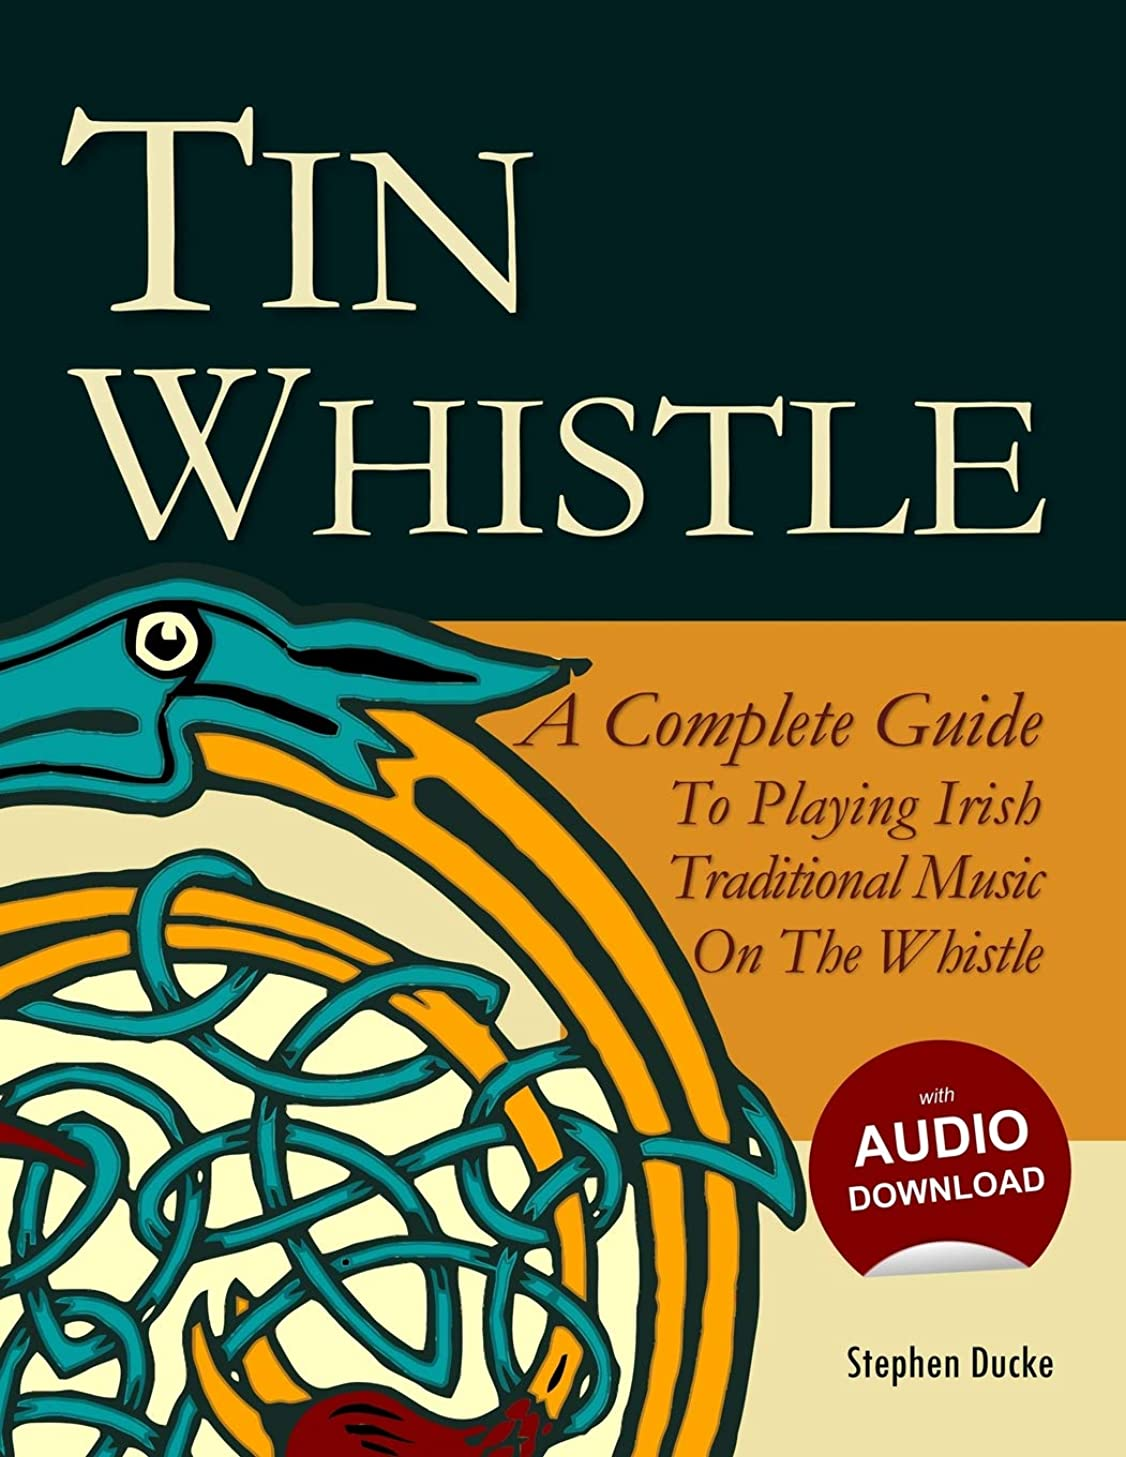 ゾーン顕微鏡シャーロットブロンテTin Whistle - A Complete Guide to Playing Irish Traditional Music on the Whistle